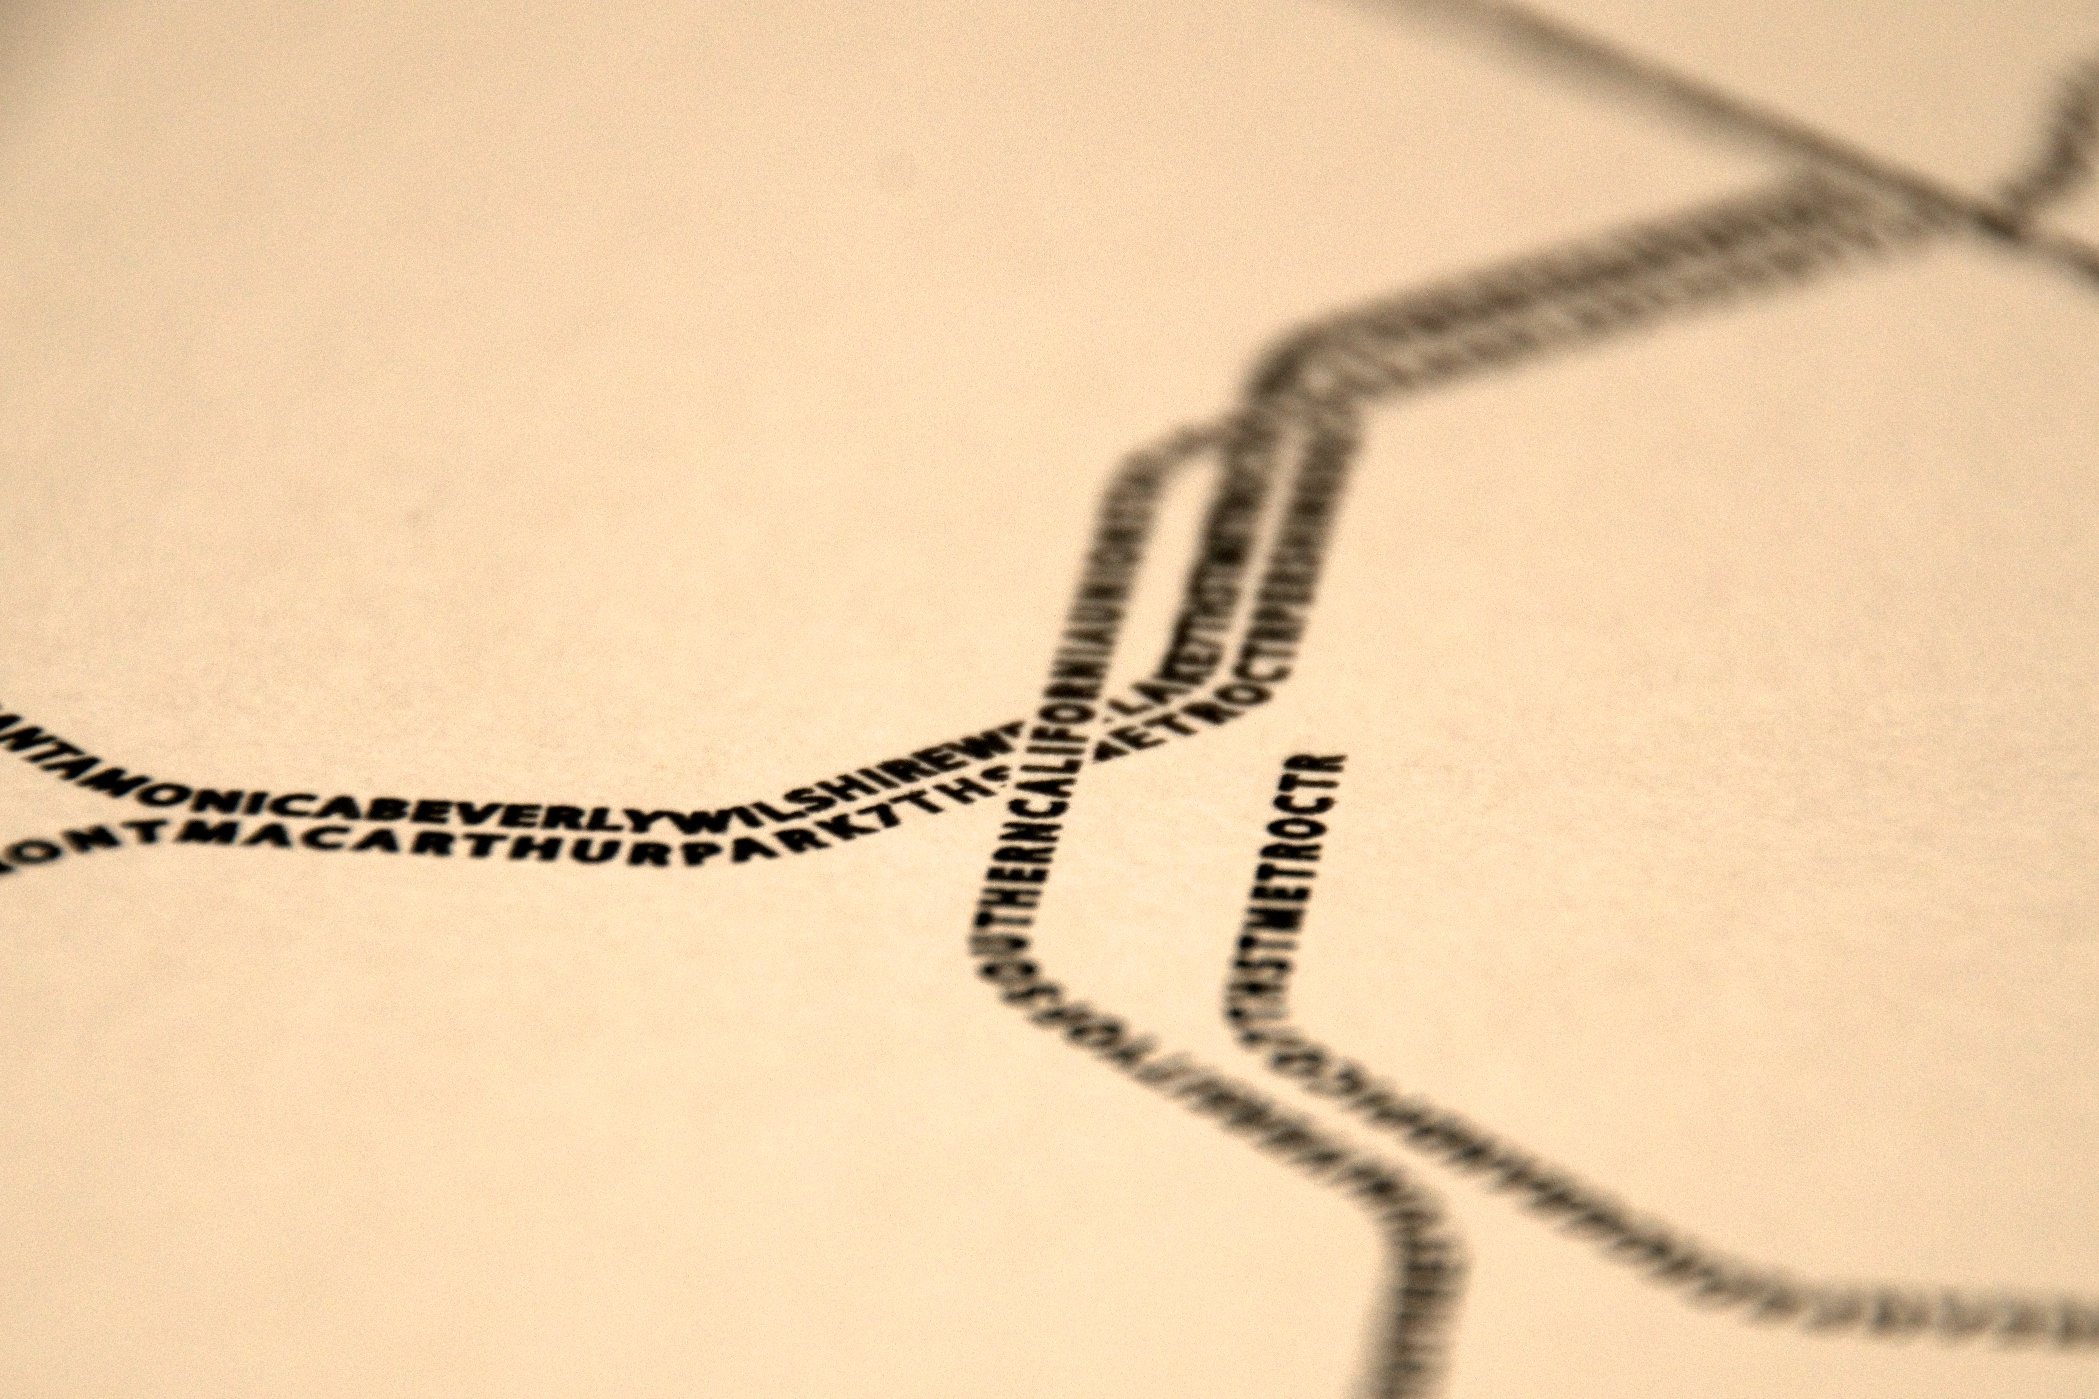 Designer Scott Glew uses the text of station names to outline transit routes for his posters.